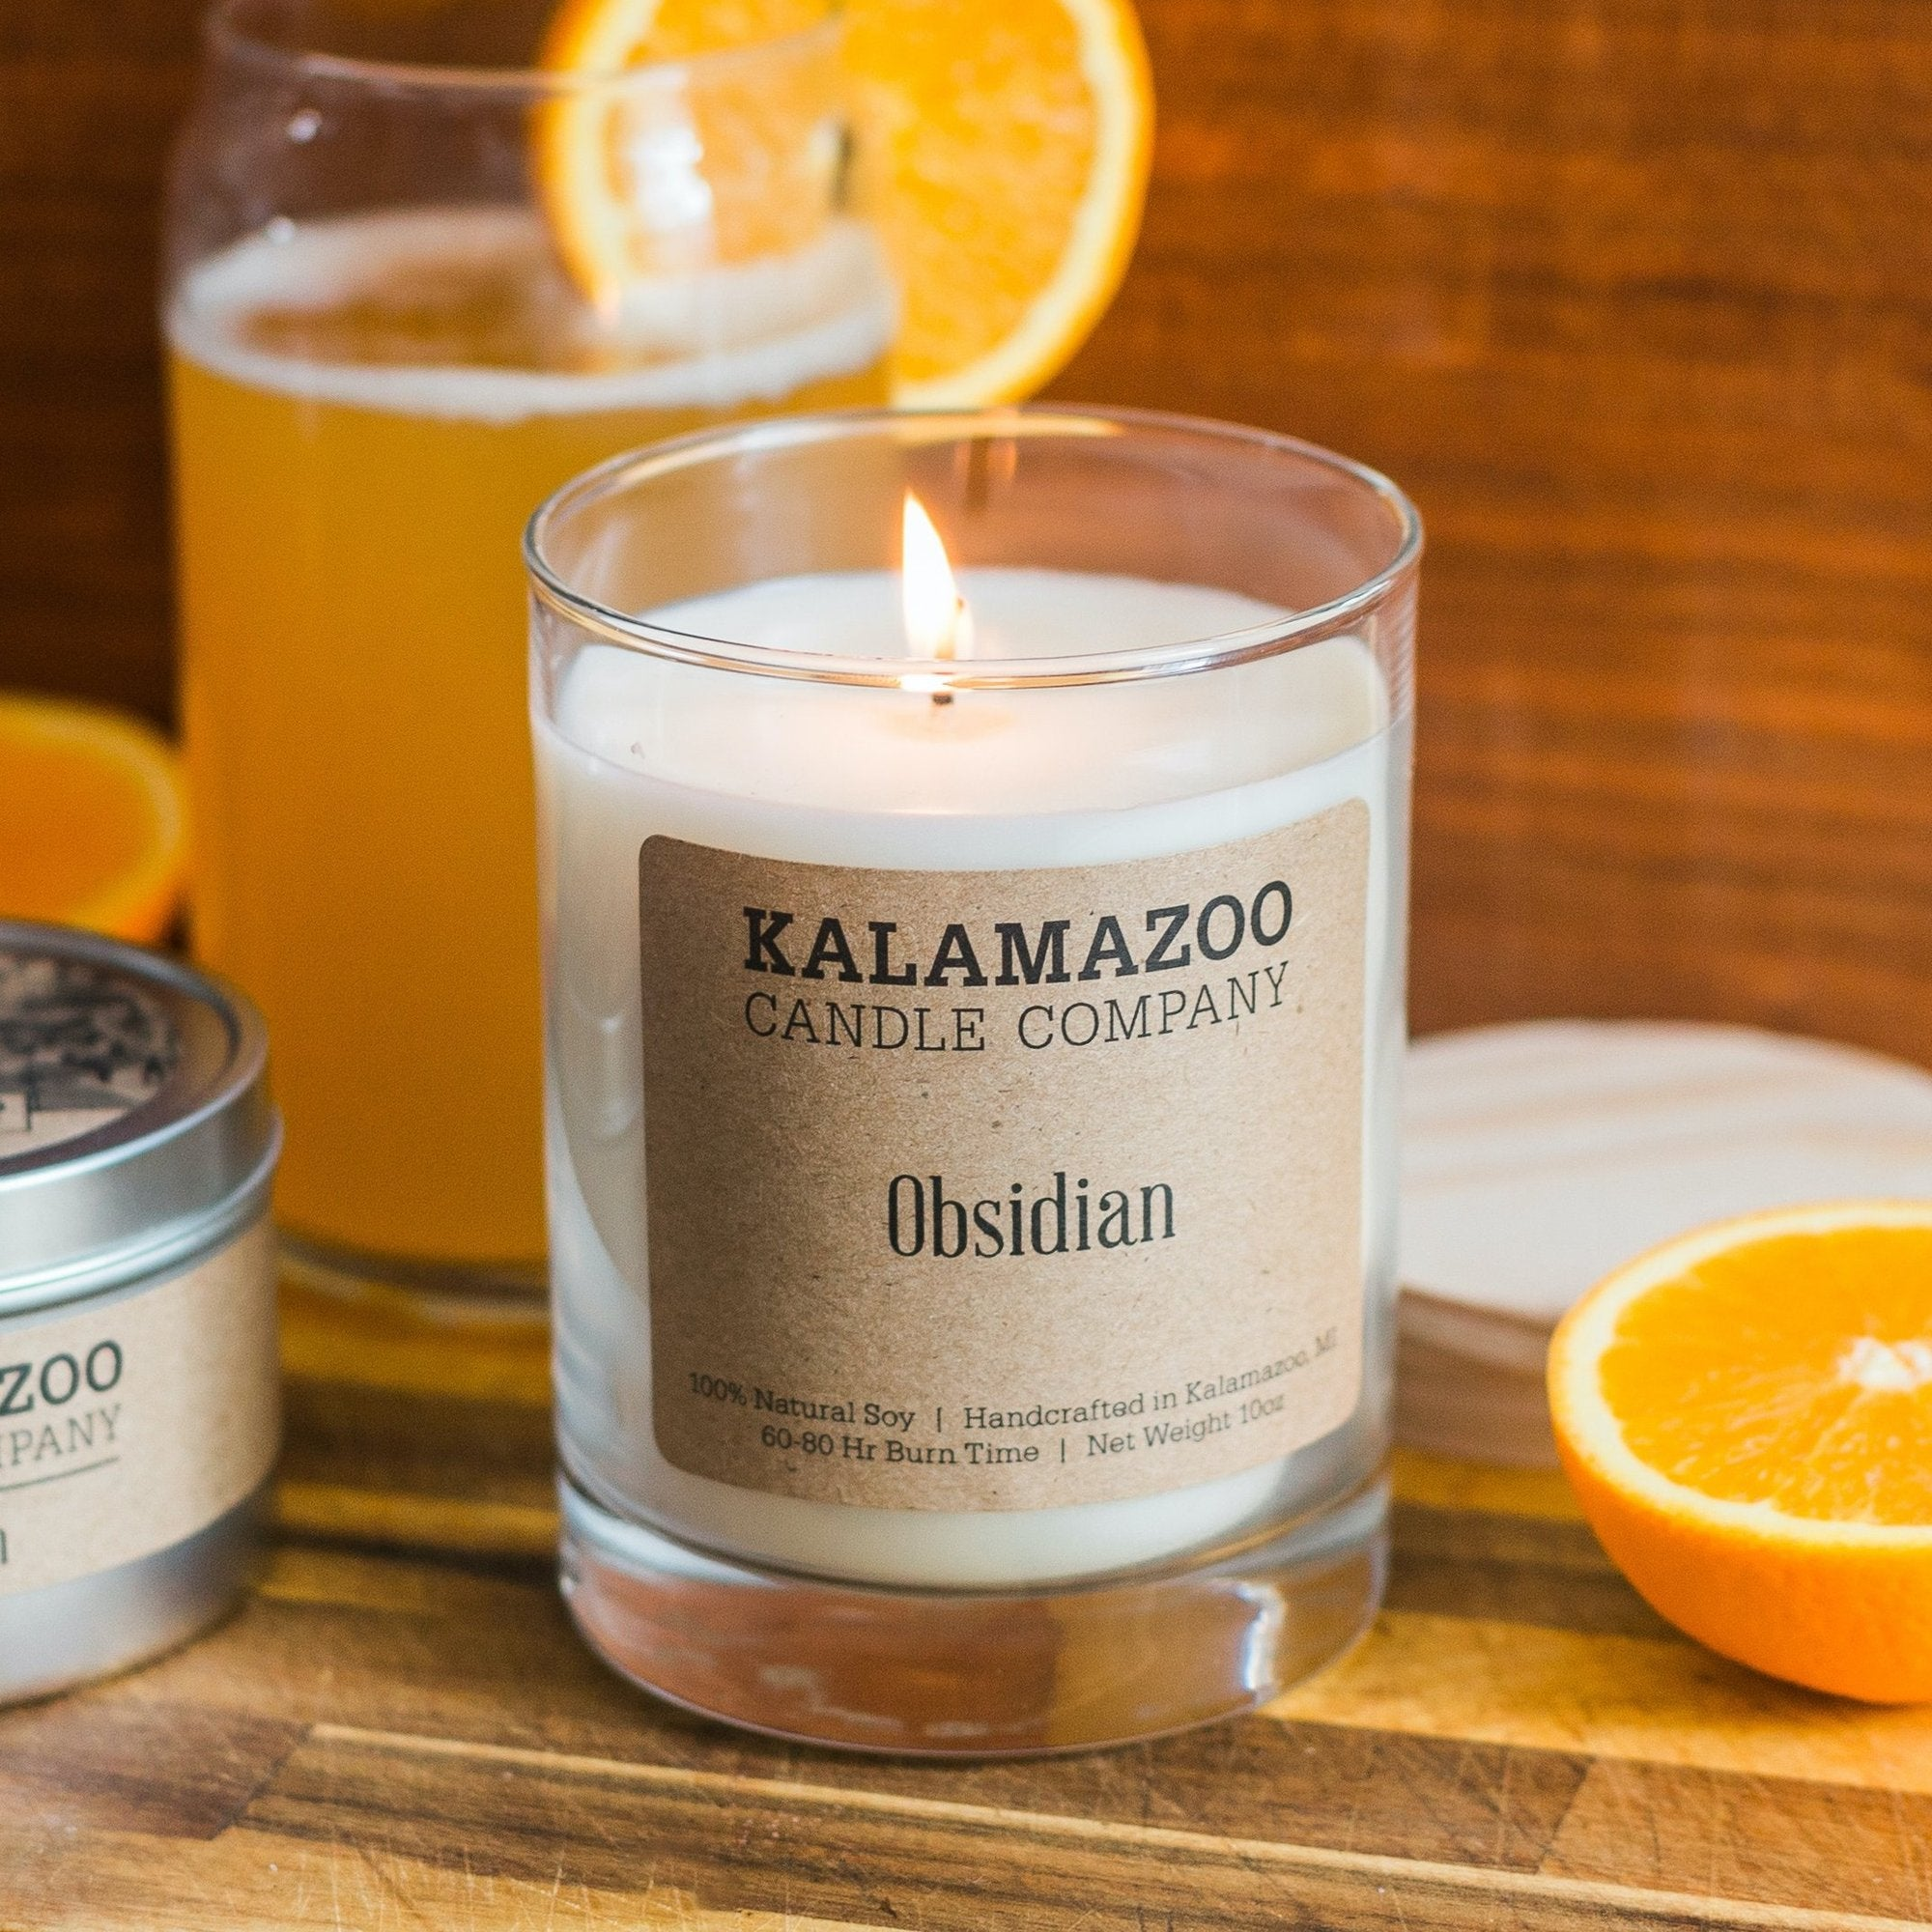 Kalamazoo Candle Company 10 oz. Jar Candles - Assorted Scents